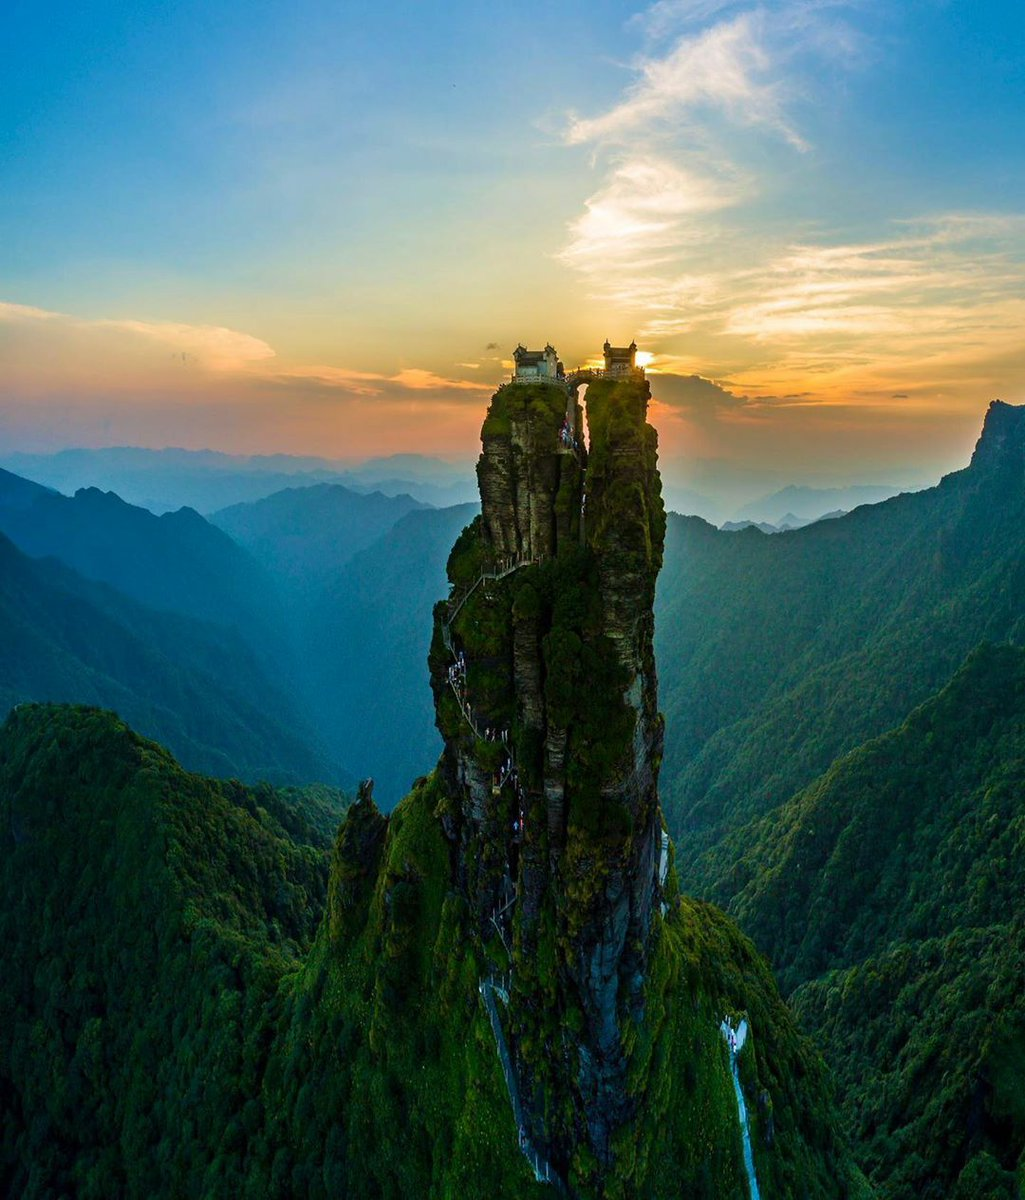 The Fanjingshan, or Mount Fanjing, is the highest peak of the Wuling Mountains in southwestern China  #China #beautiful #landscapephotography    world is incrediblepic.twitter.com/9malyrCawZ